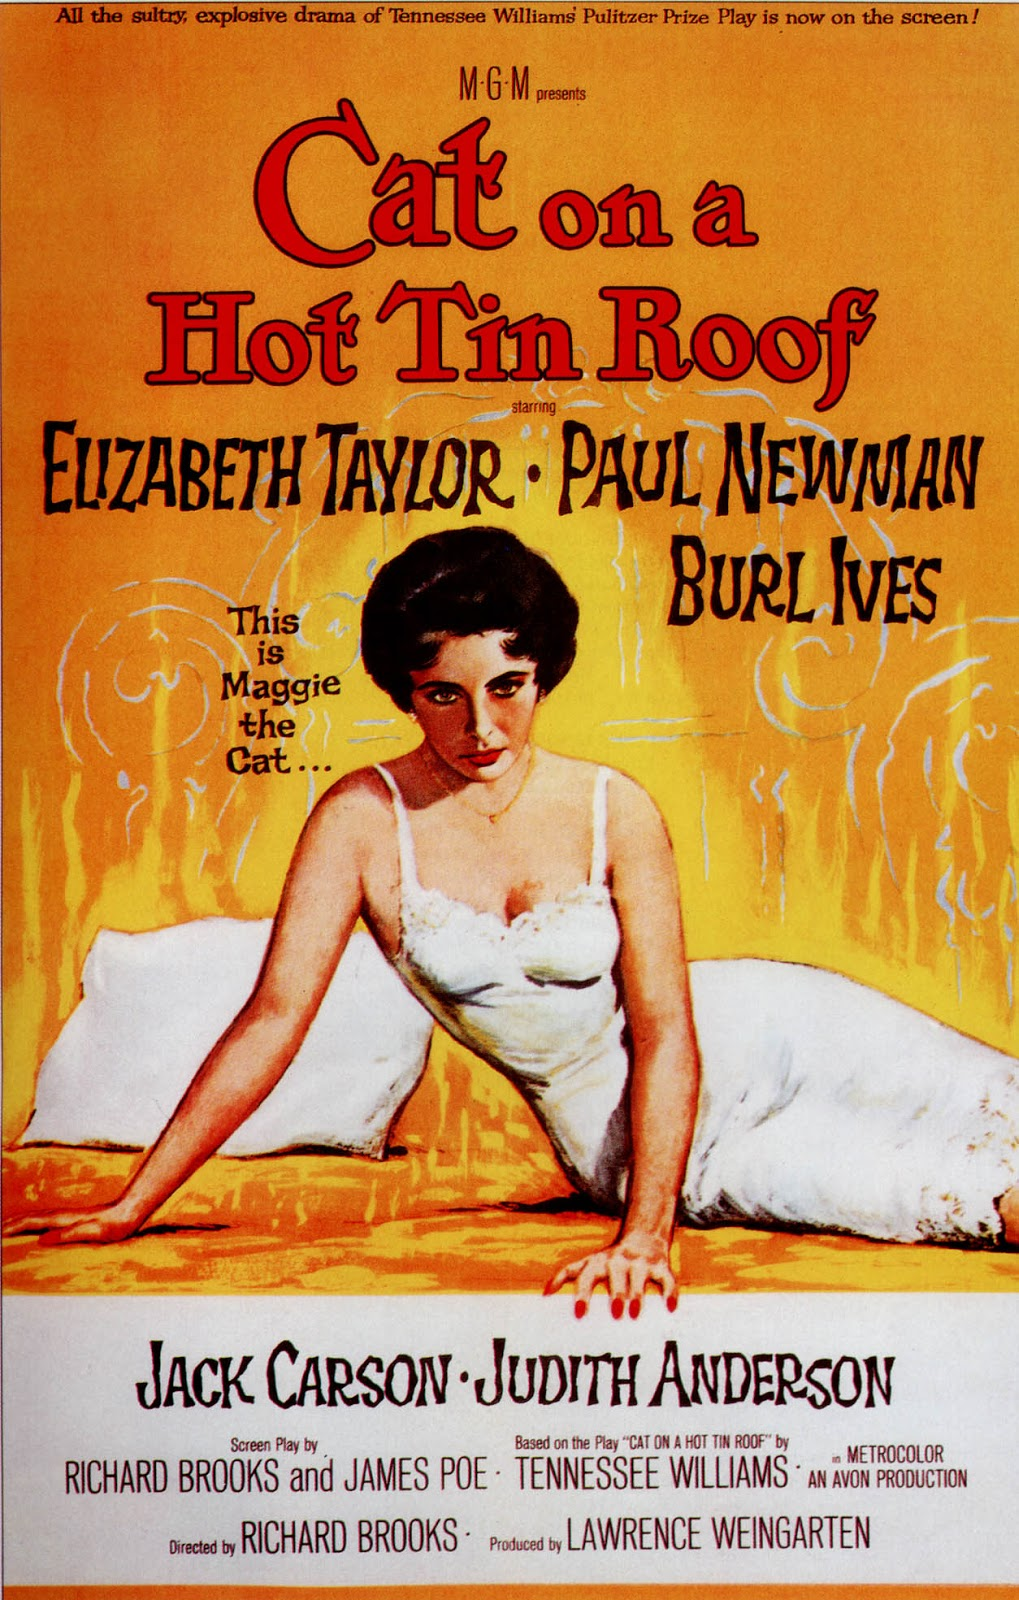 1001 Classic Movies: Cat On A Hot Tin Roof